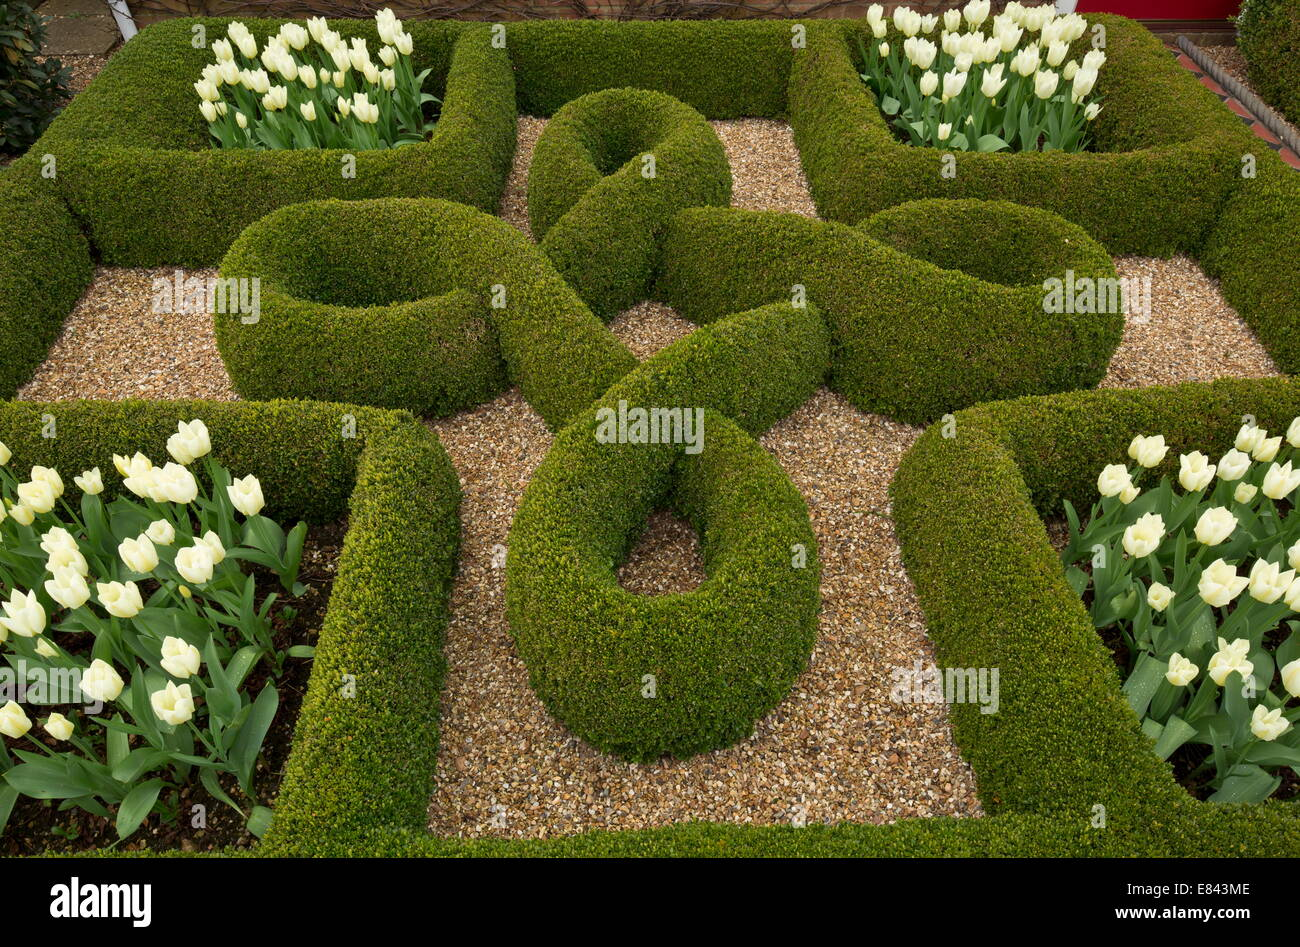 Knot garden with box hedges and white tulips in a private for Knot garden designs herbs